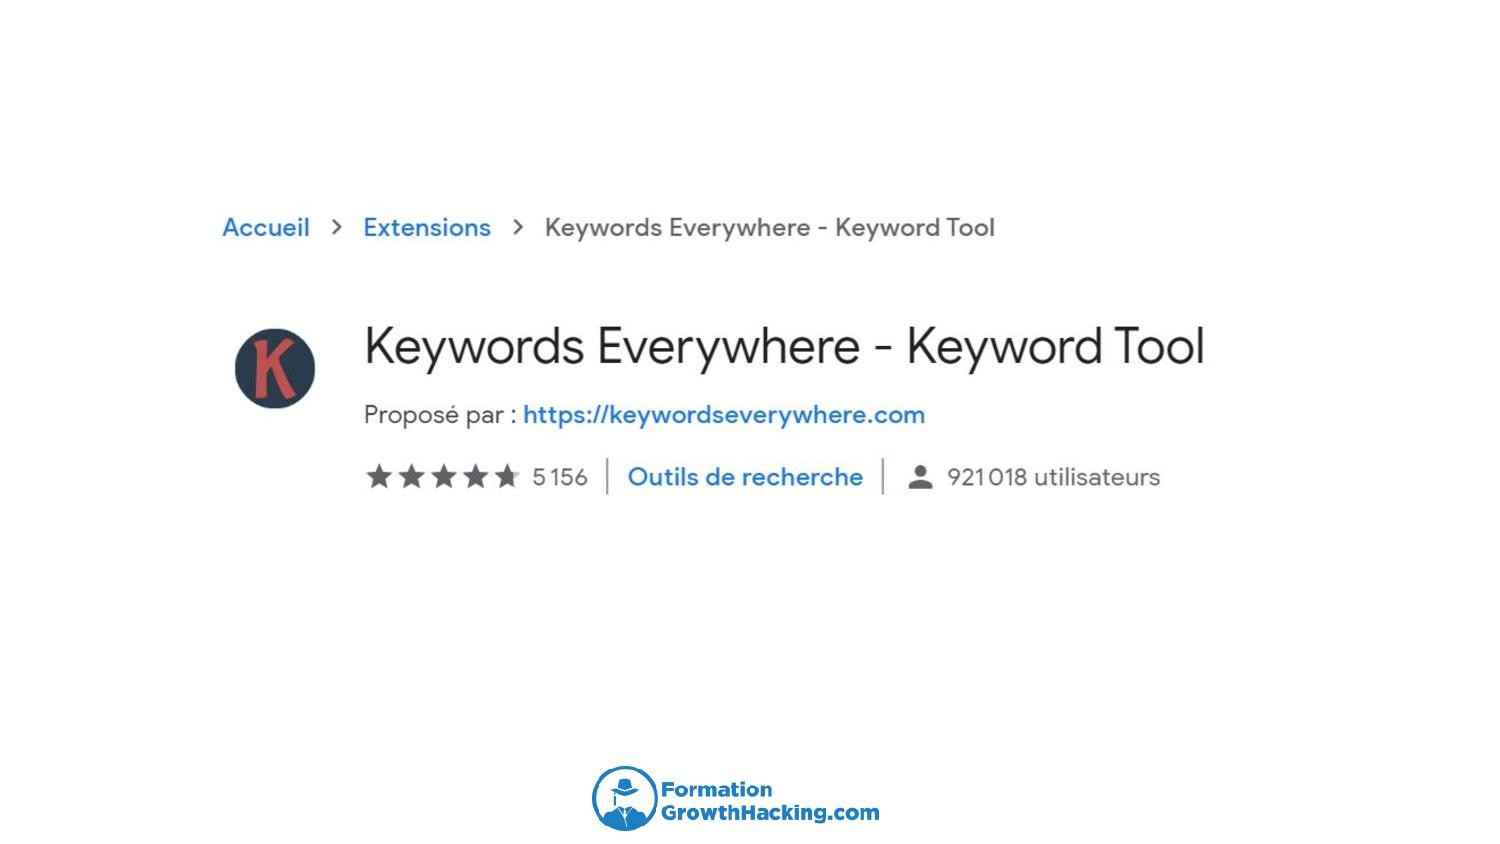 L'extension Chrome Keywords Everywhere vous offrira un bon panel de mots-clés, lorsque vous suggérerai à Google une requête particulière.